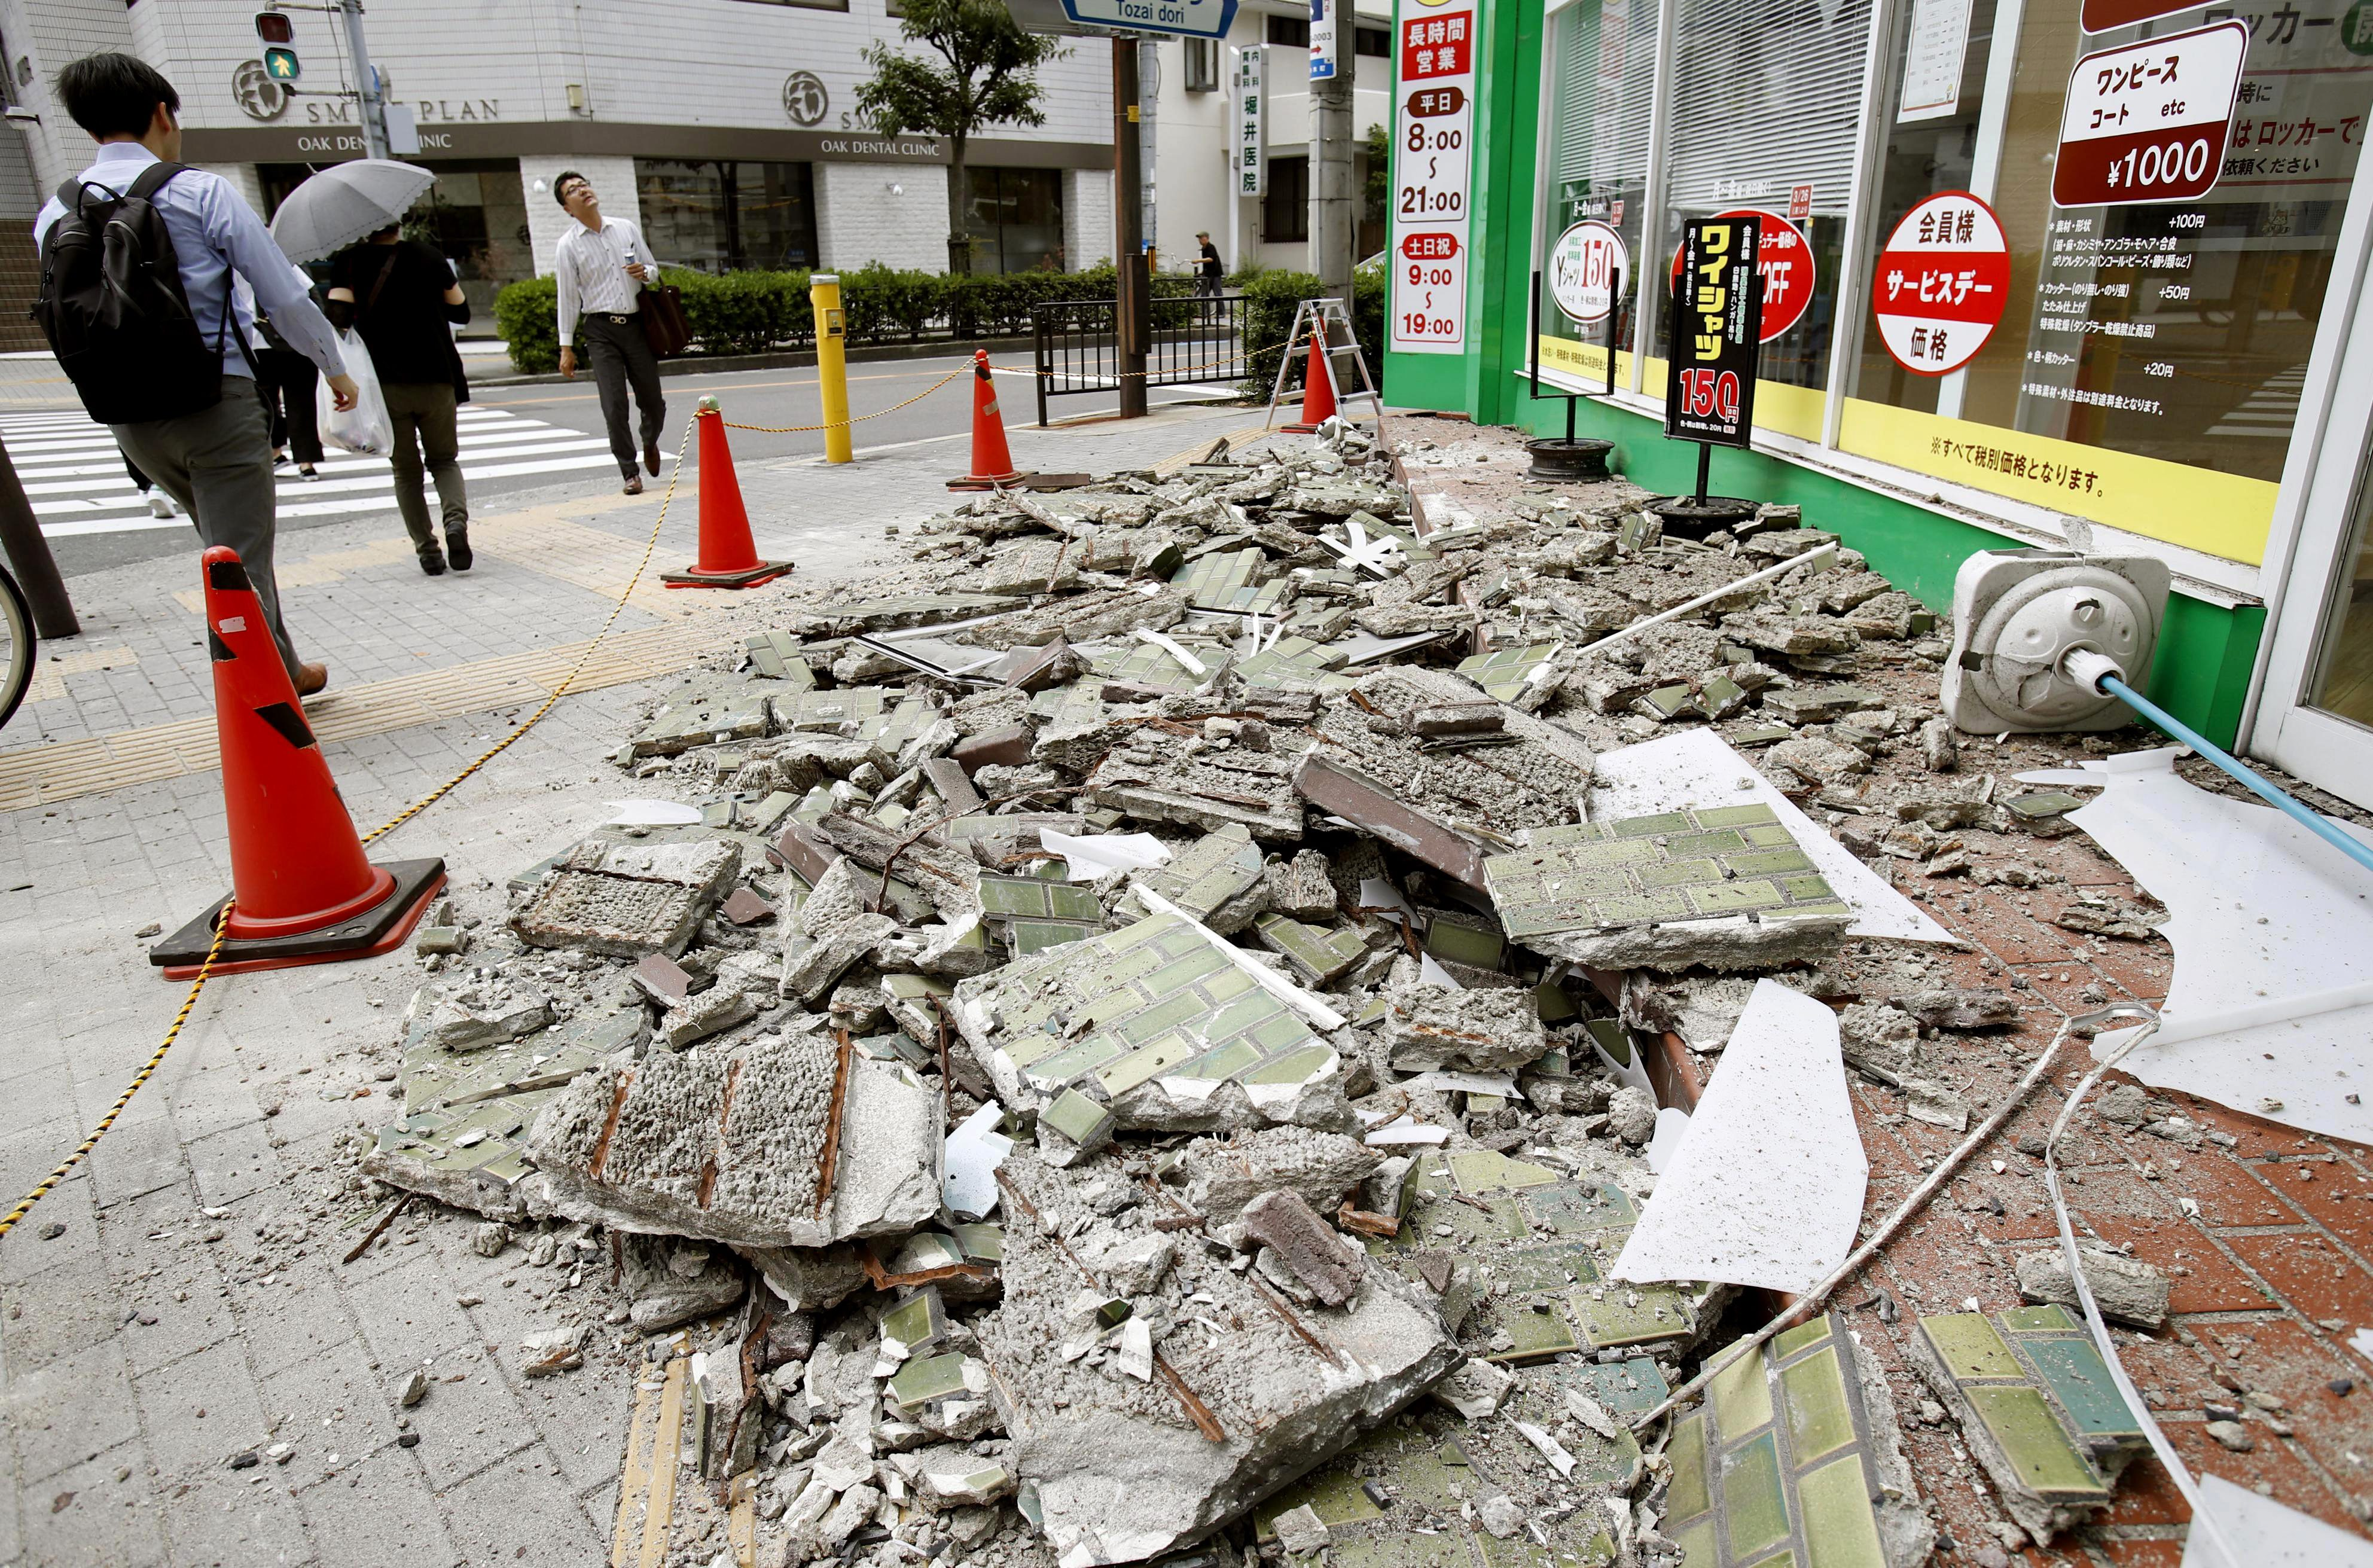 Rules of conduct during the earthquake